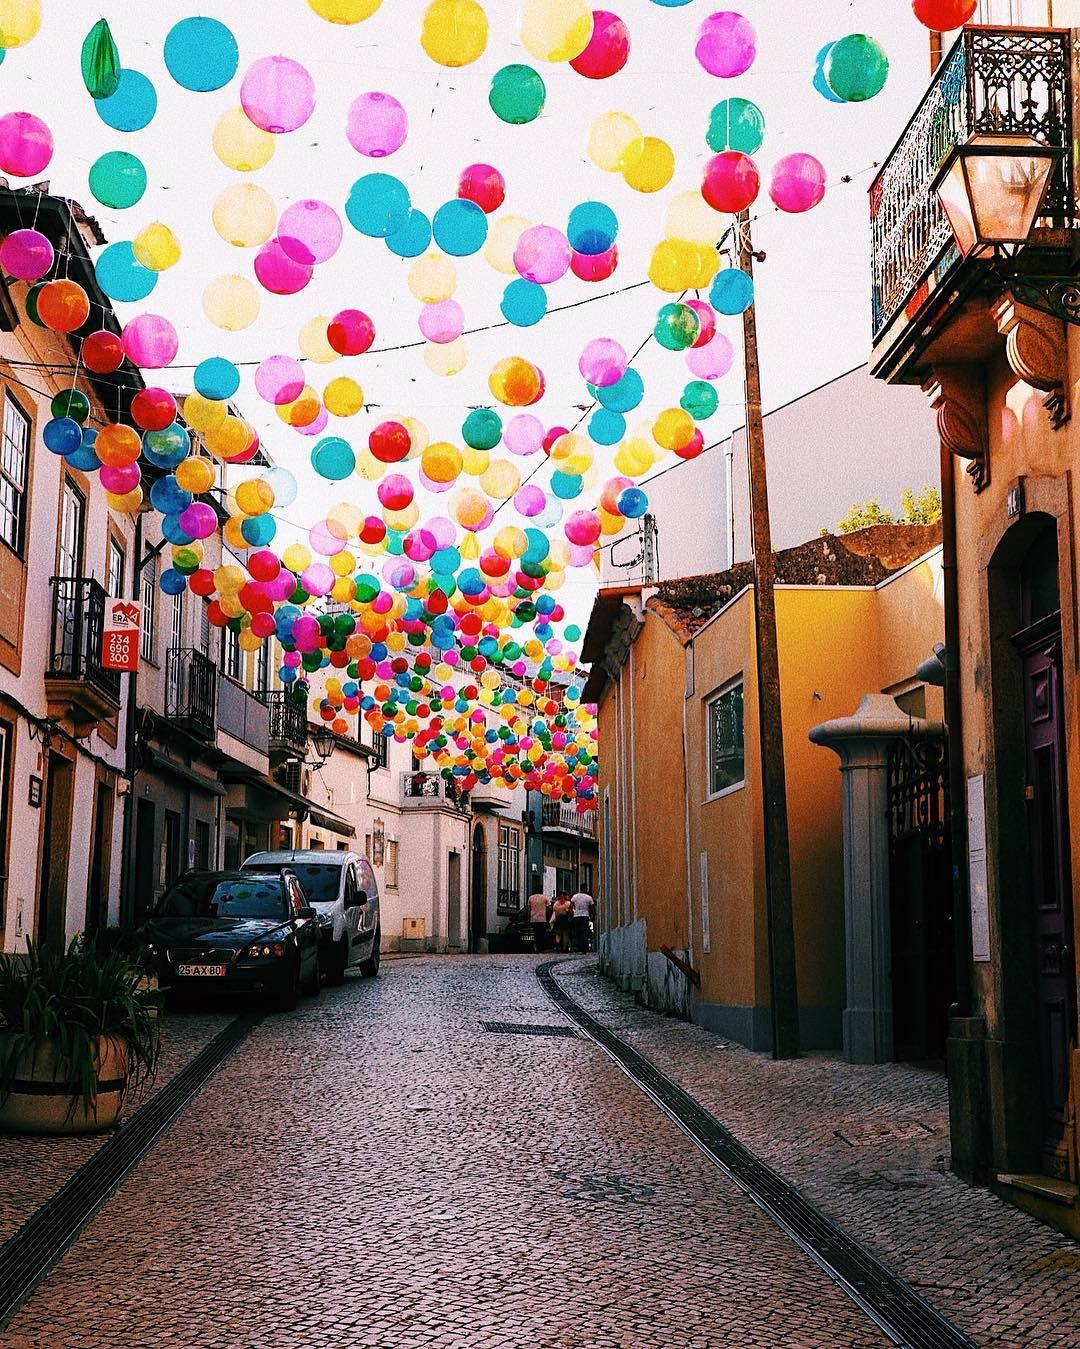 Color Imagination Take Over The City Of Agueda In Portugal With